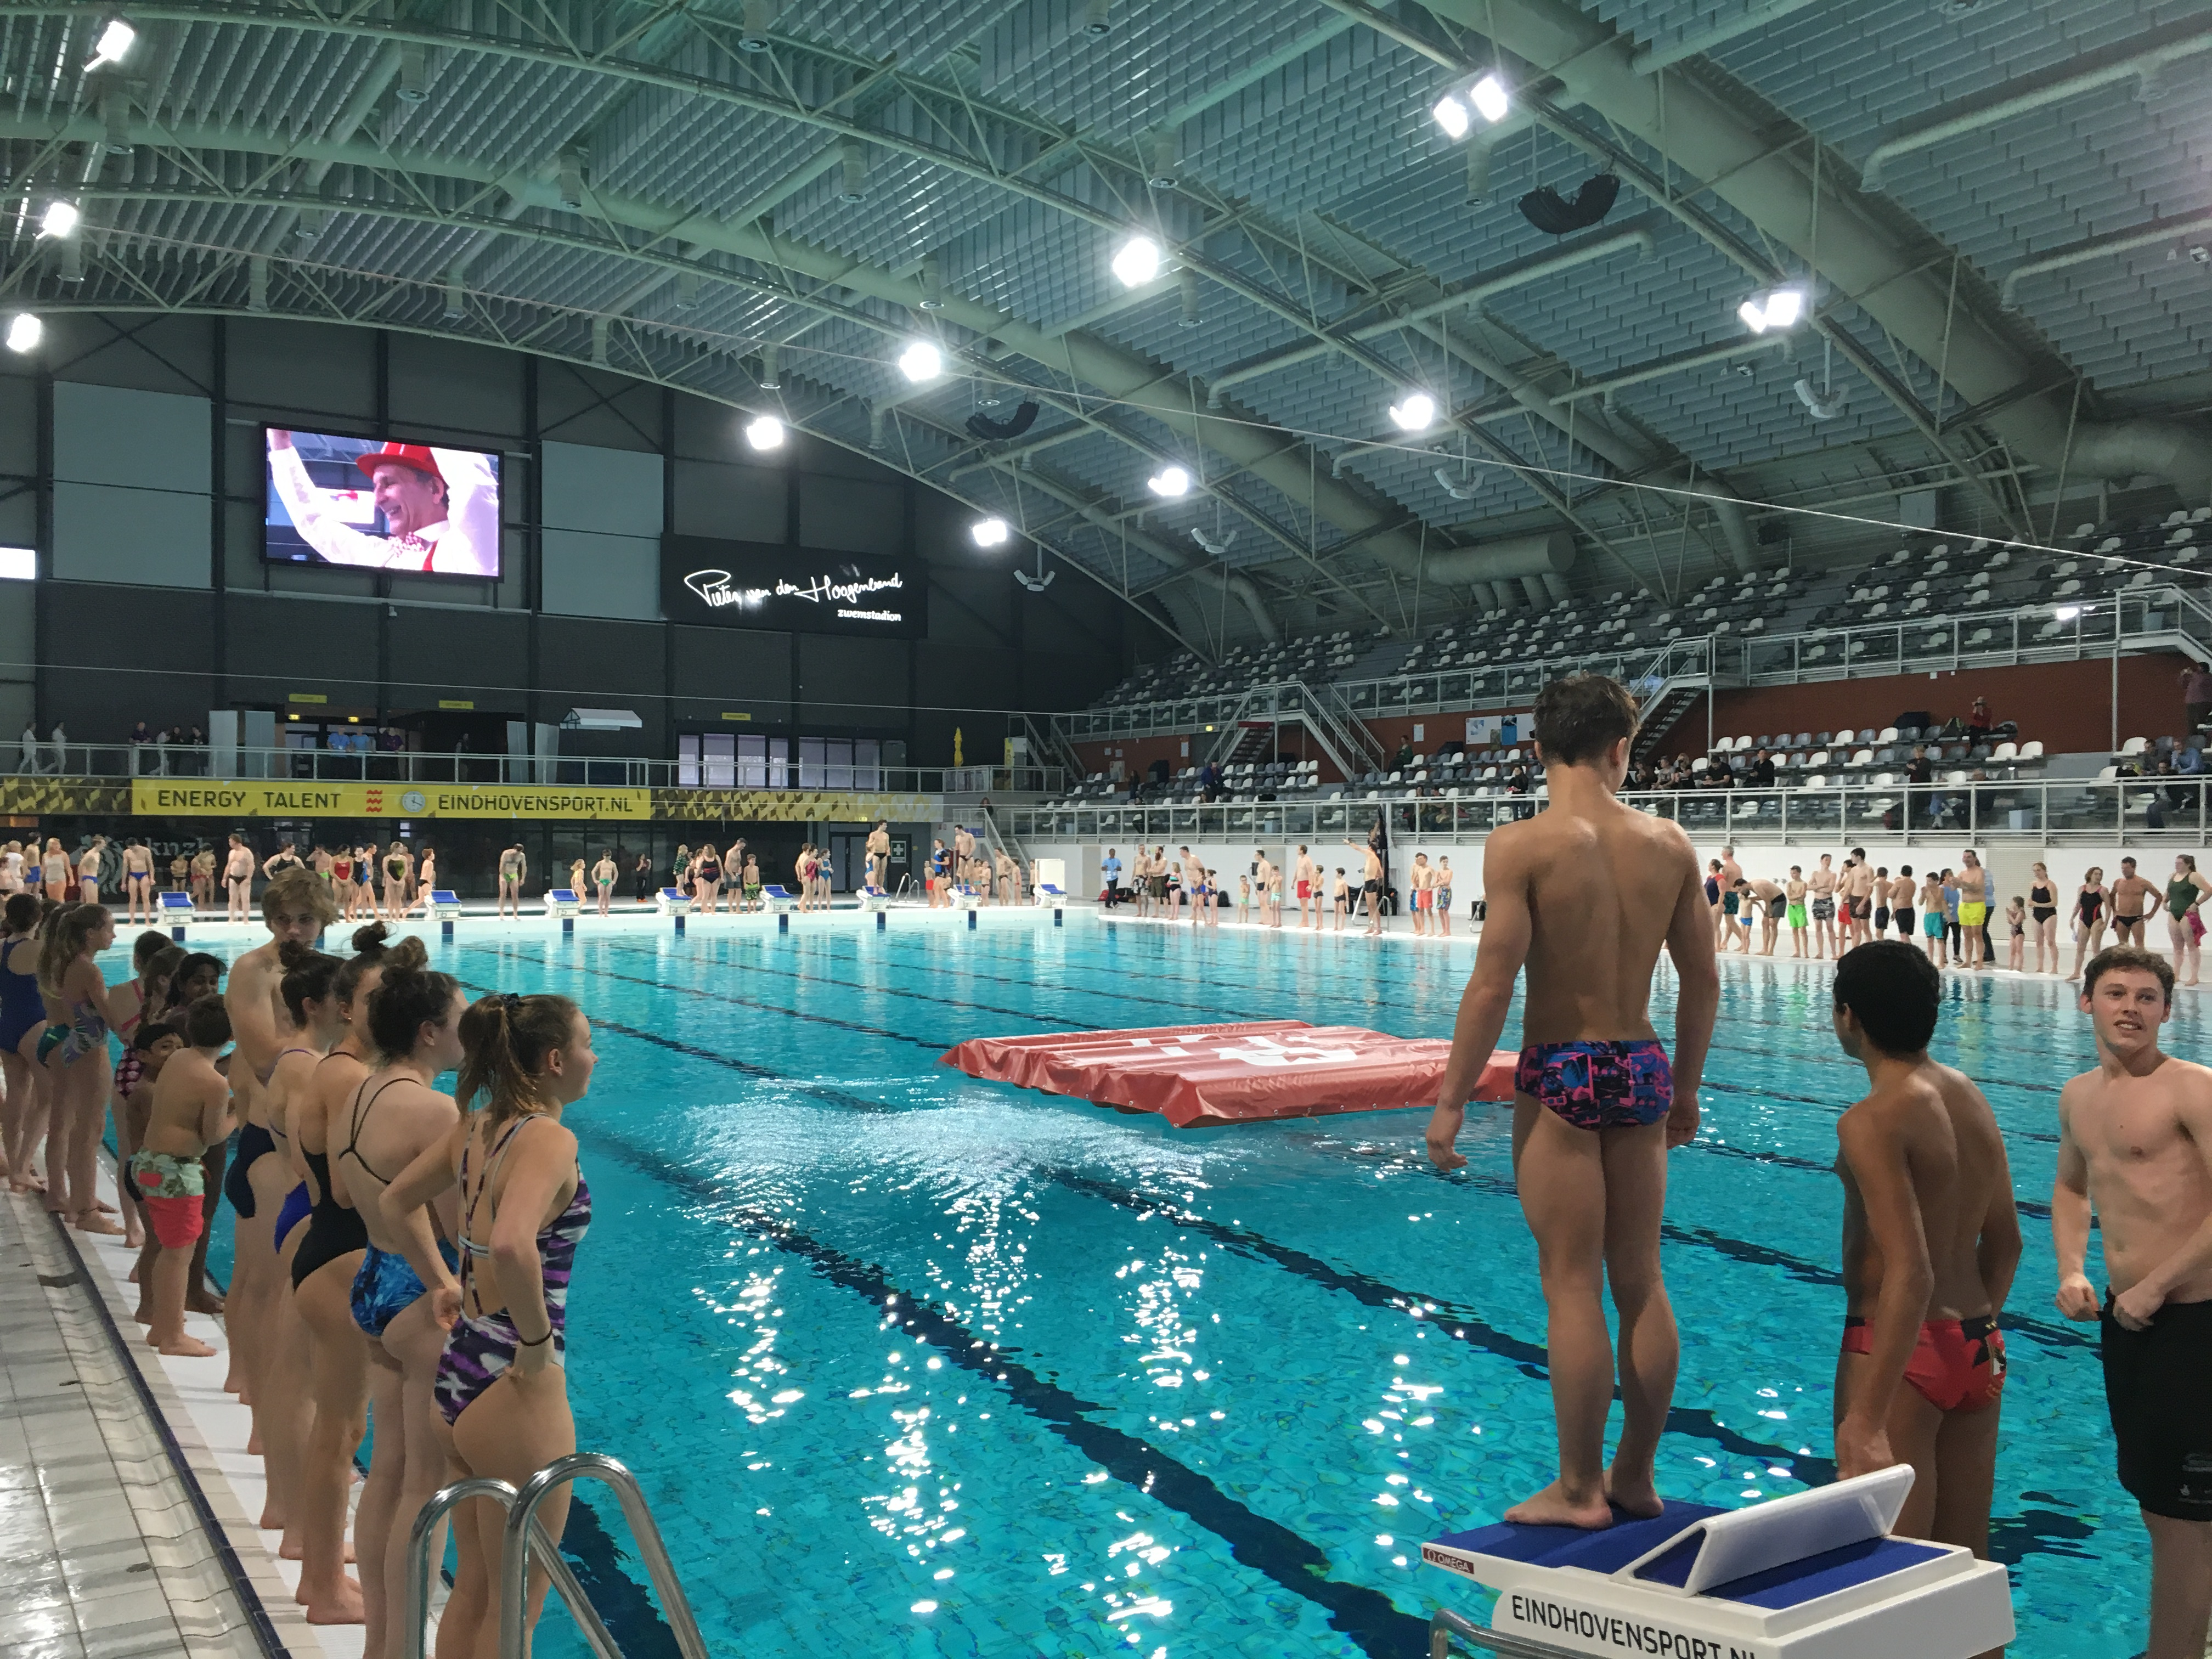 World Record Most Cannonball Dives At The Same Time 281 People In The Water Eindhoven Diving Cup Eindhoven Diving Cup